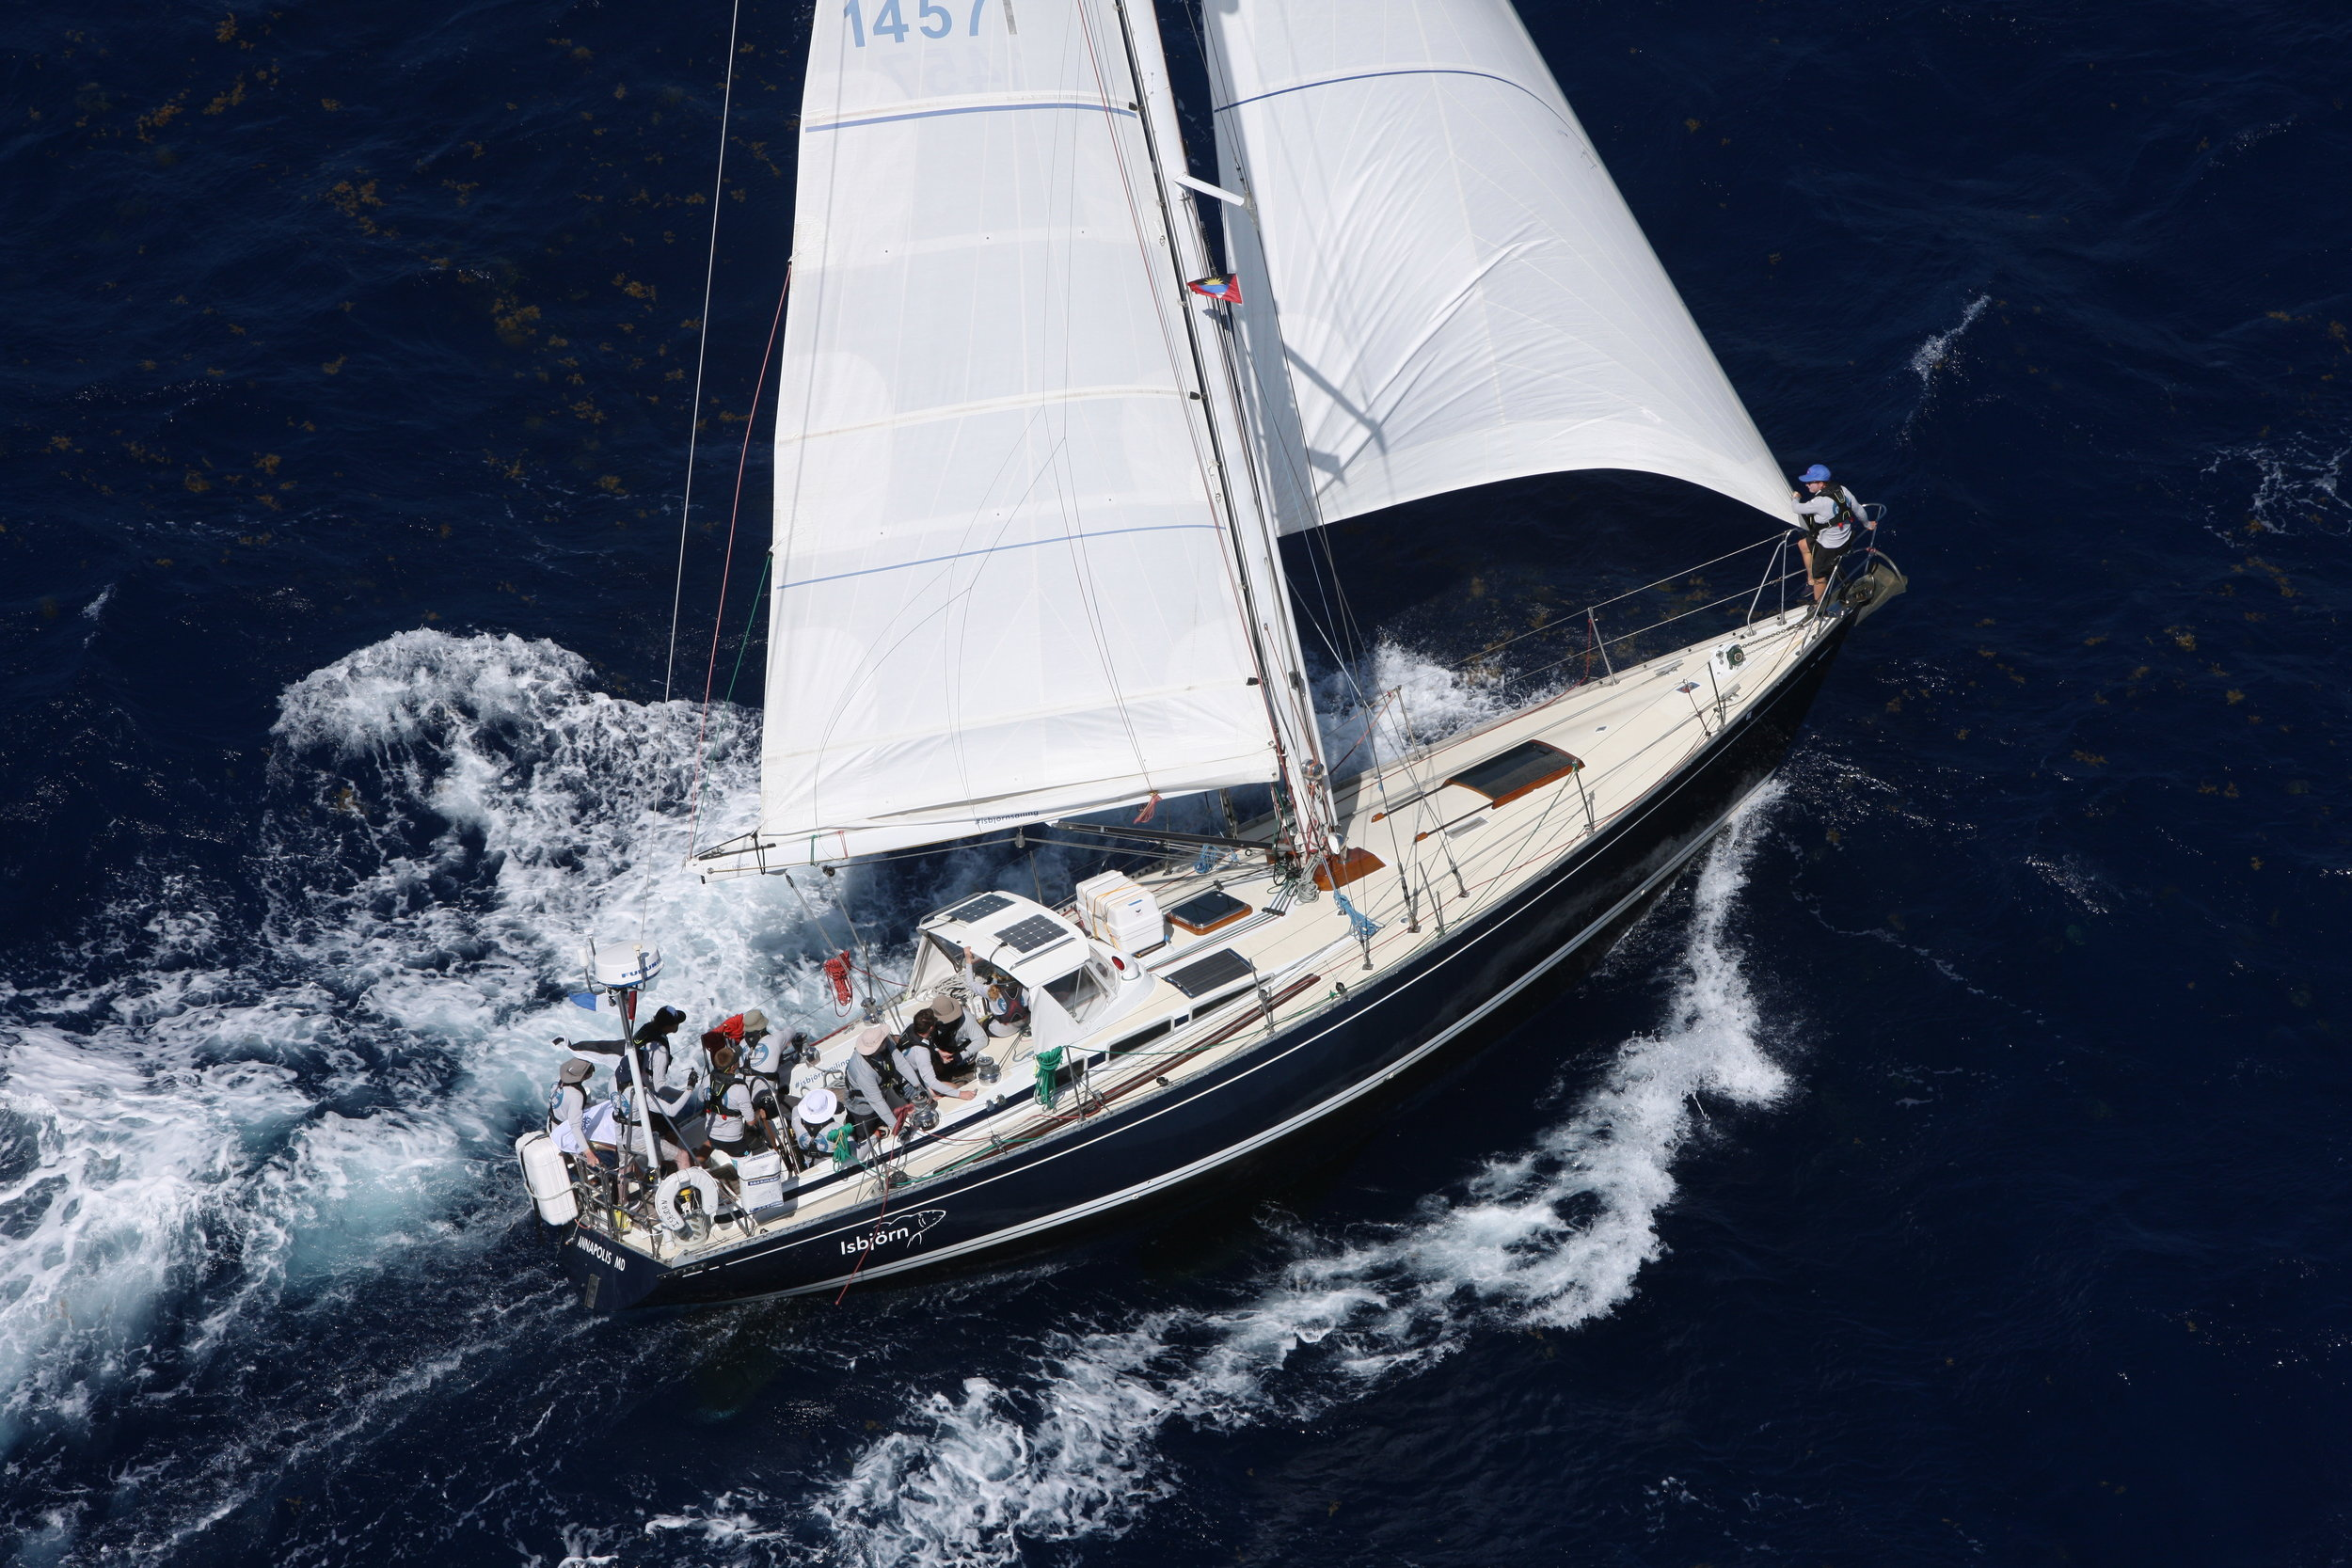 ISBJORN, our S&S Swan 48.